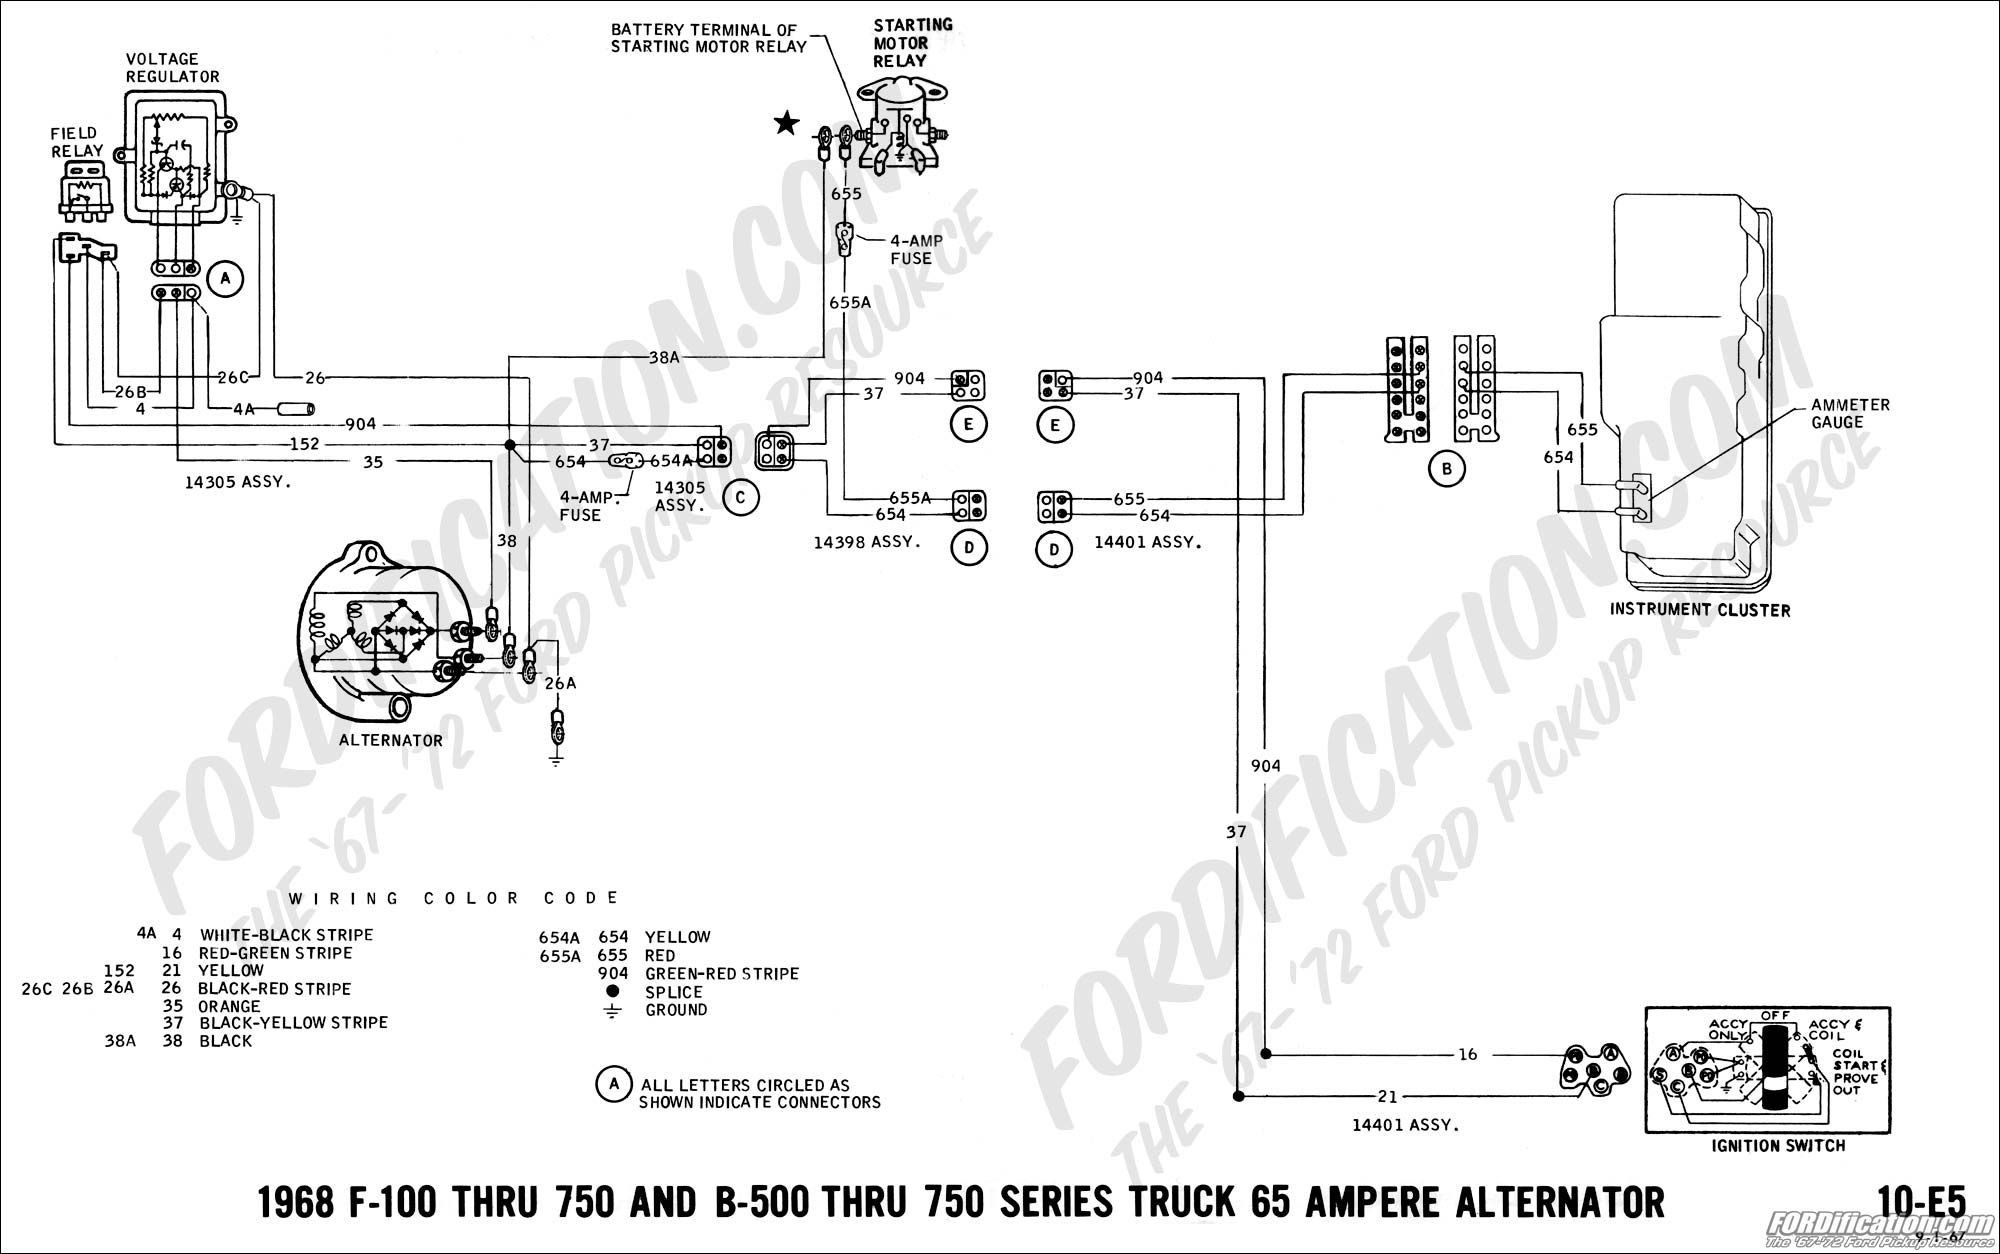 Kubota Alternator Wiring Diagram 2160 Data Denso Schematic Kioti Tractor Ck25 Ignition